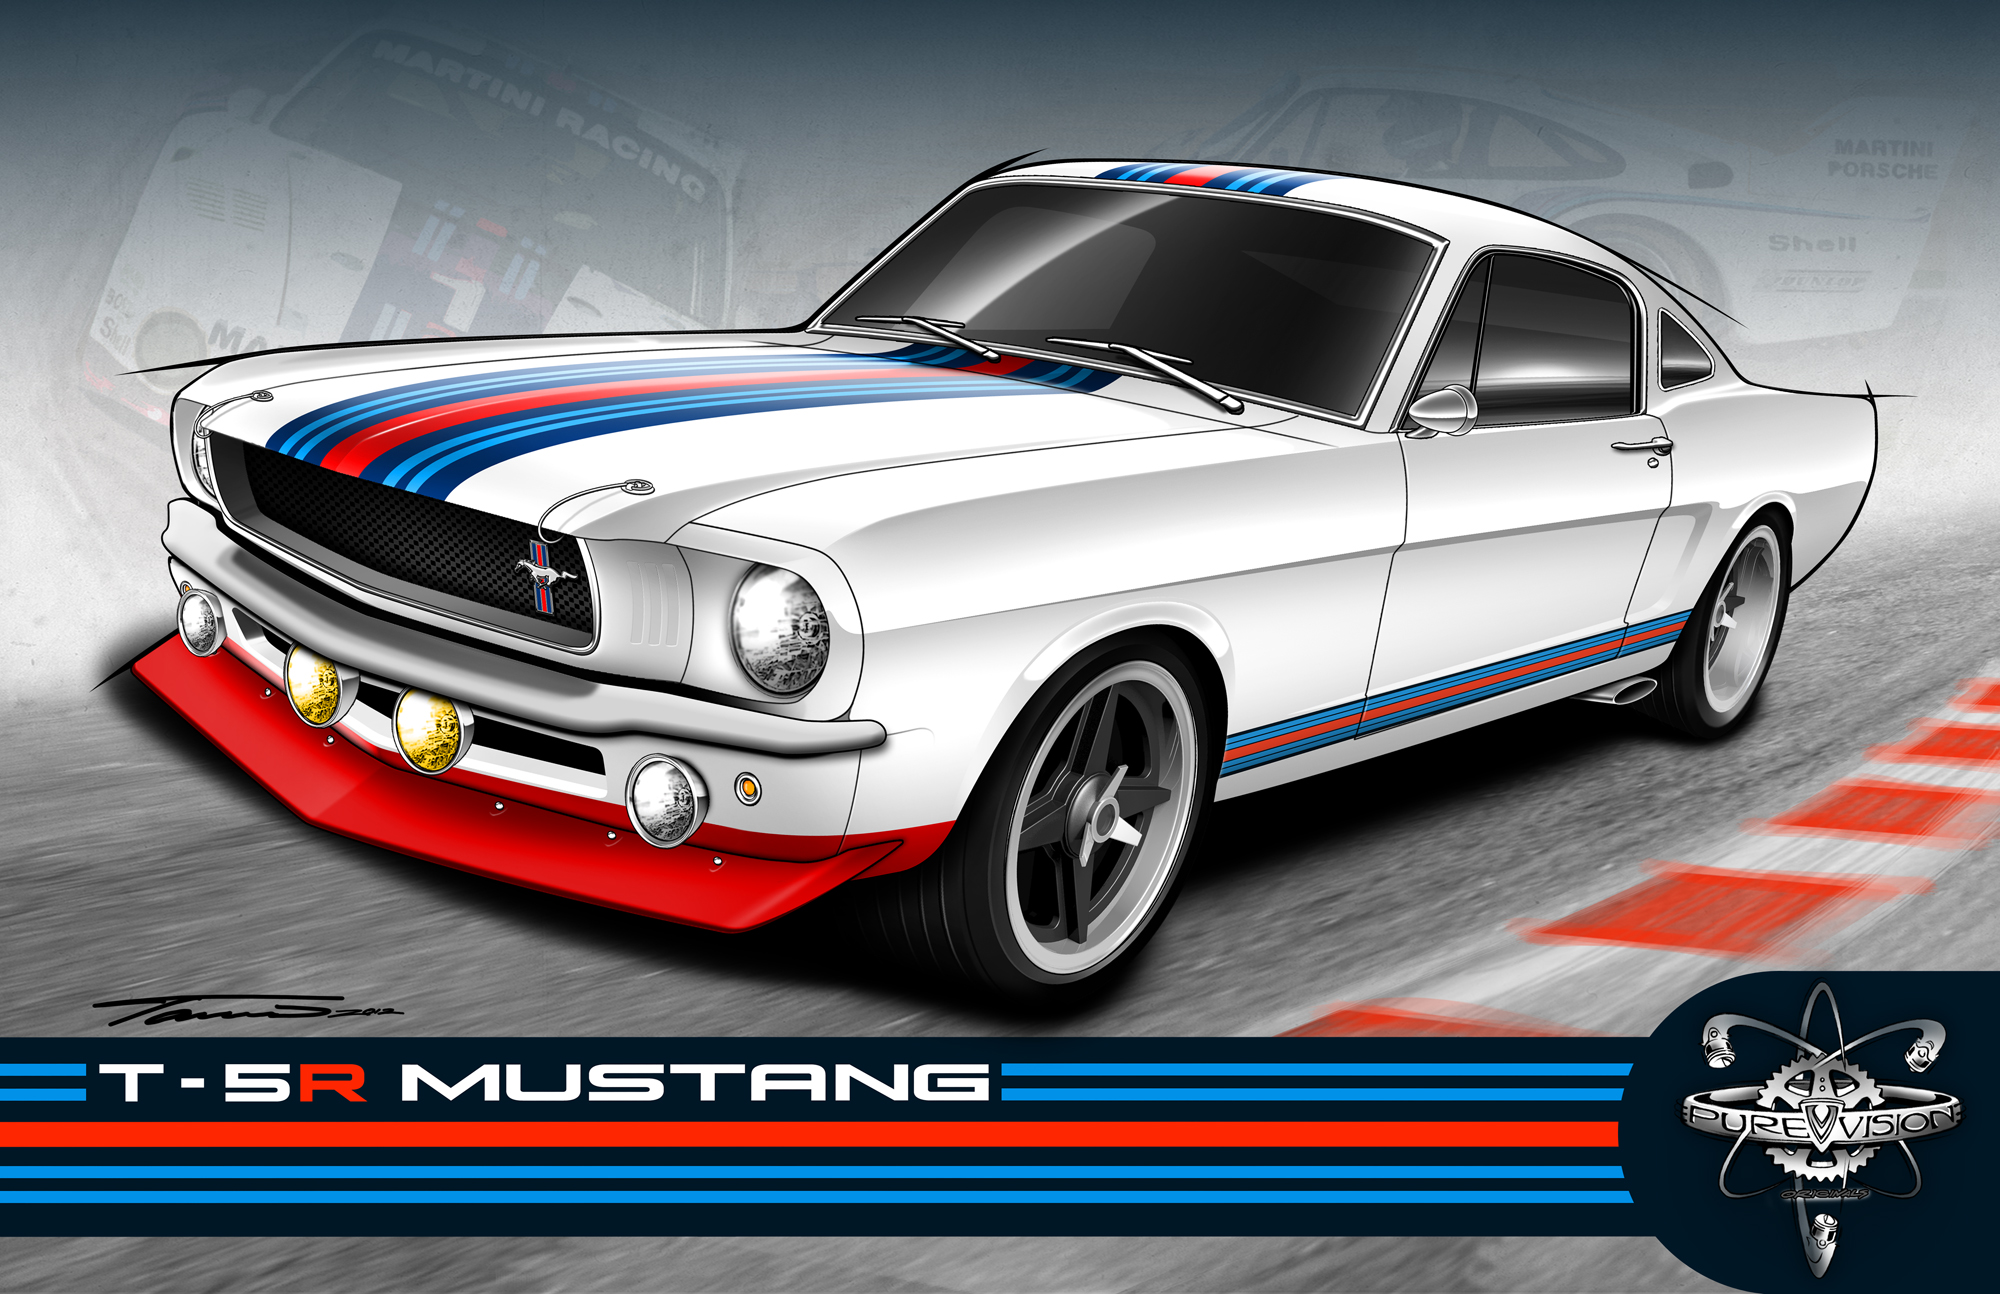 Martini_Mustang_Layout_3_4_LoRes